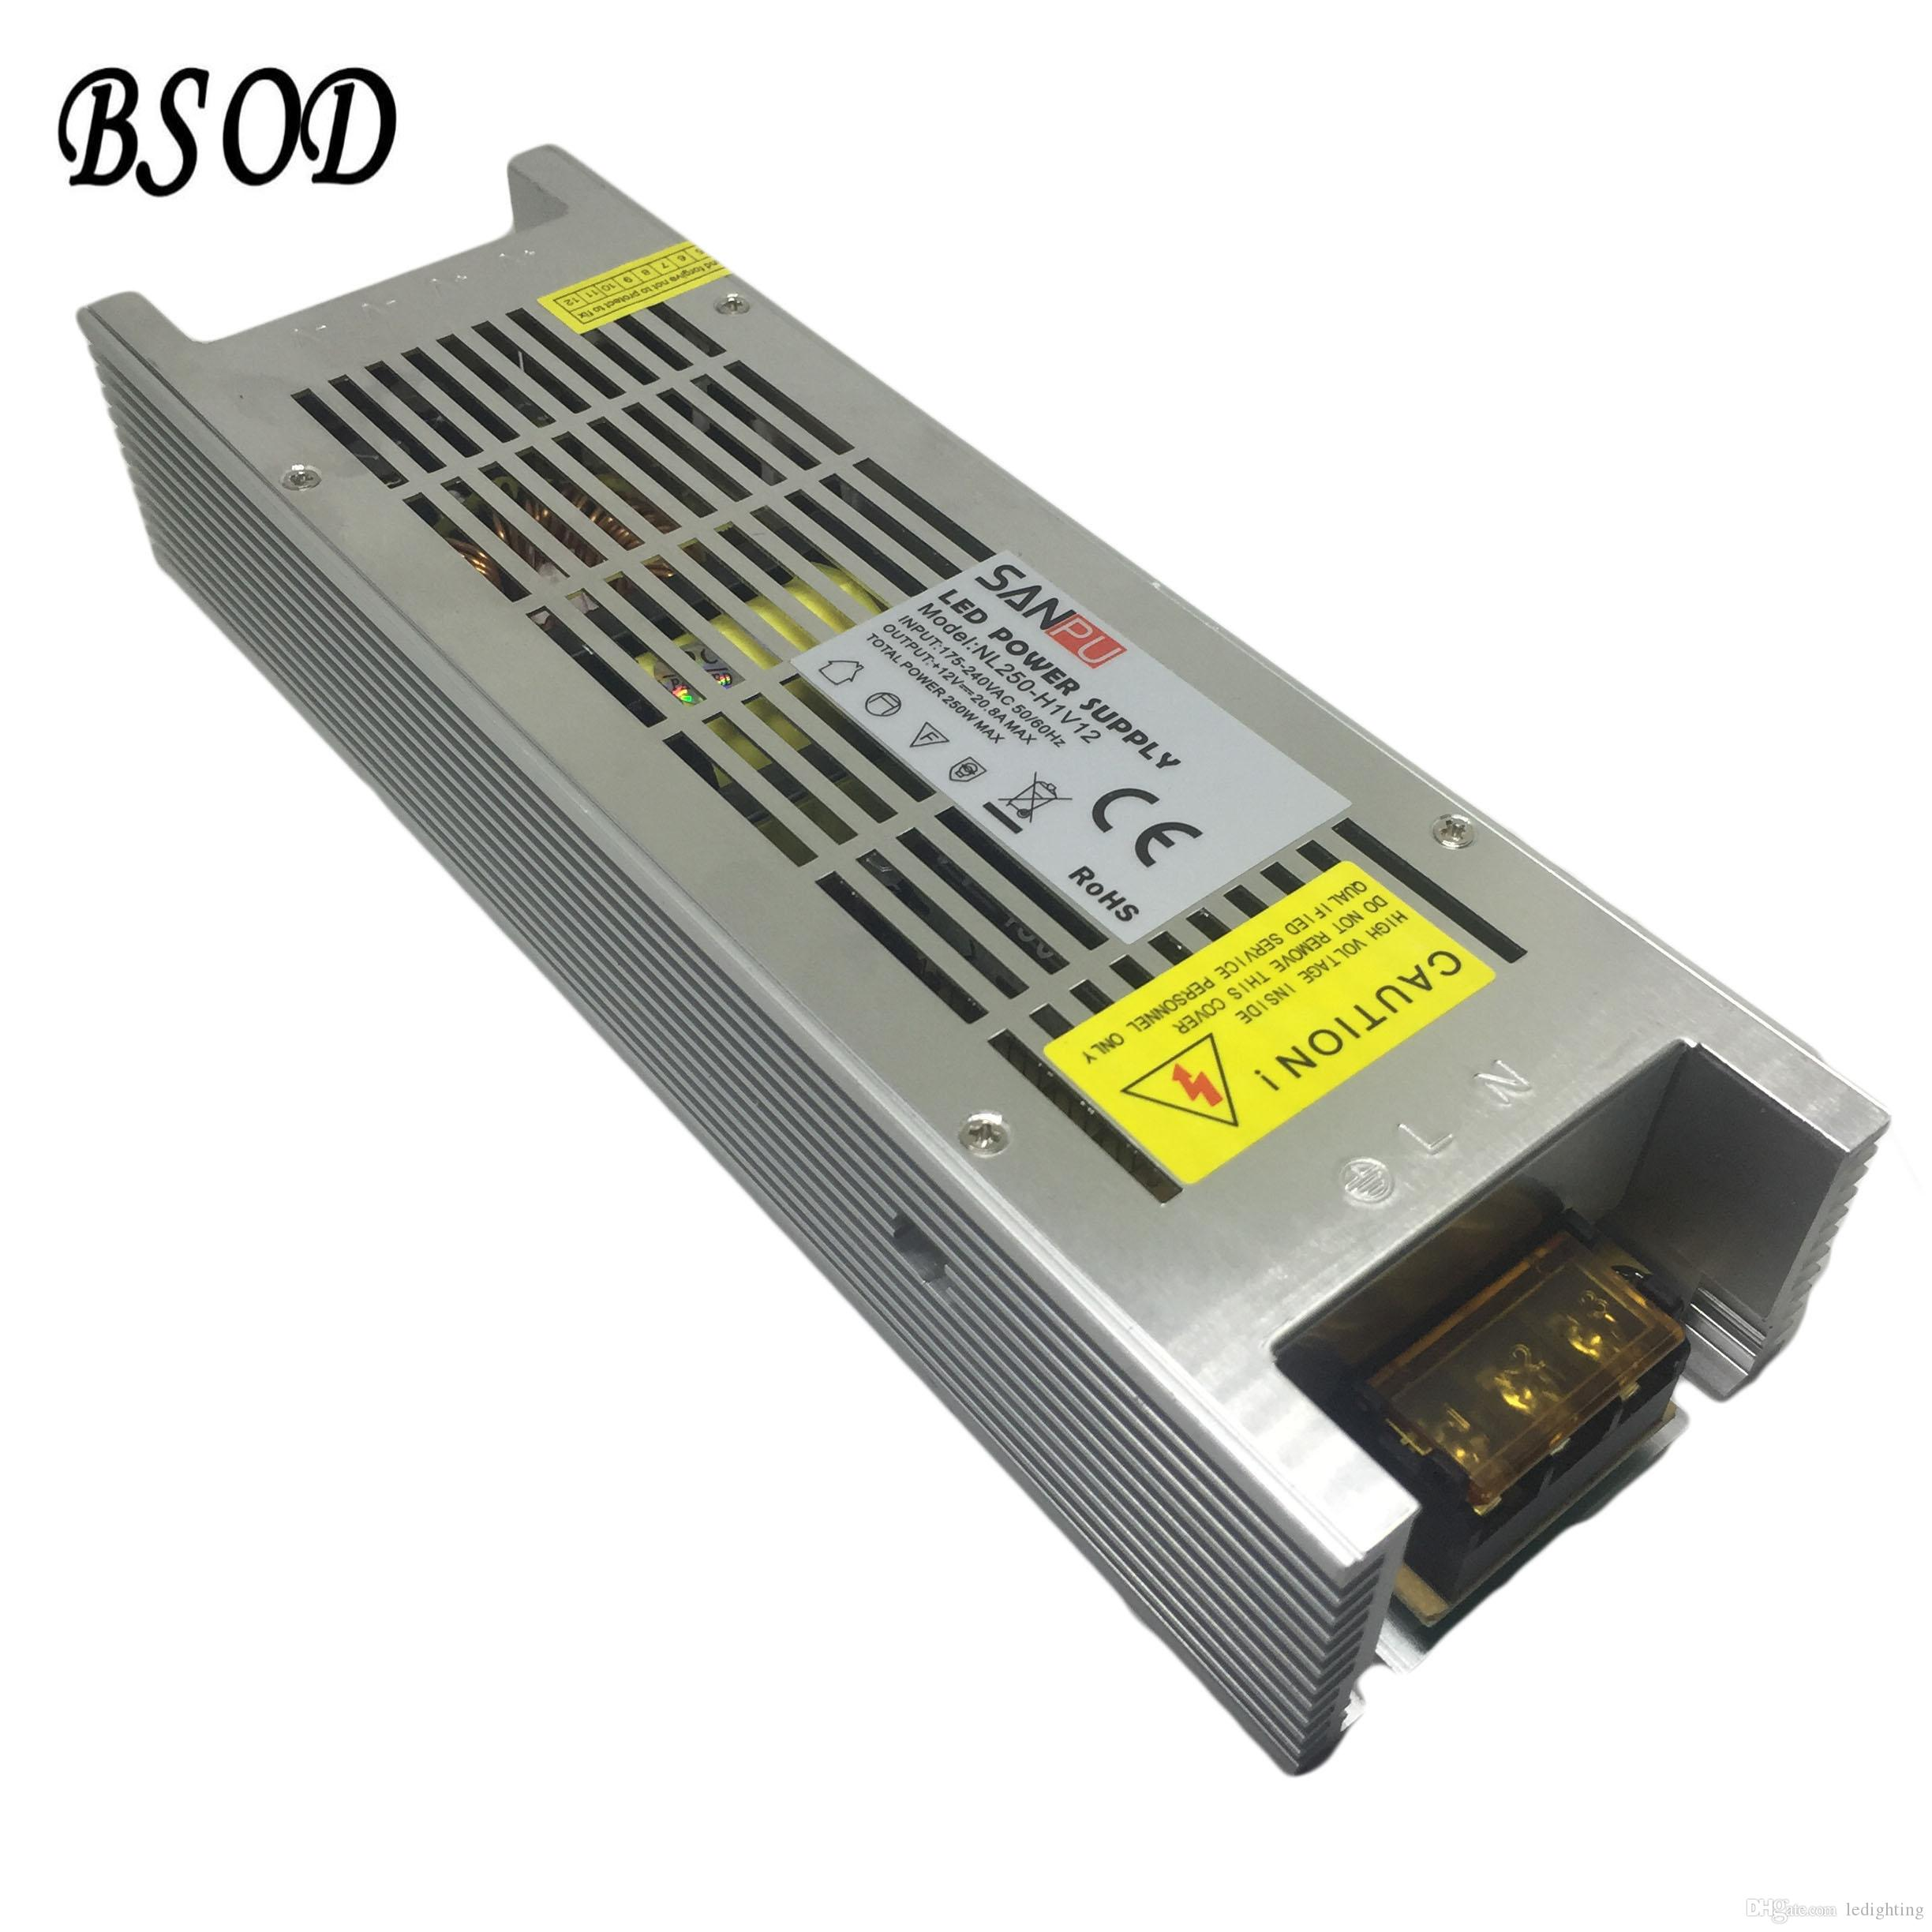 2018 Sanpu 250w Dc12v/Dc24v Switch Power Supply Ac To Dc Led Lighting  Transformer Nl250 W1v12 Ultra Thin Aluminum Shell 20.8a Max Driver From  Ledighting, ...